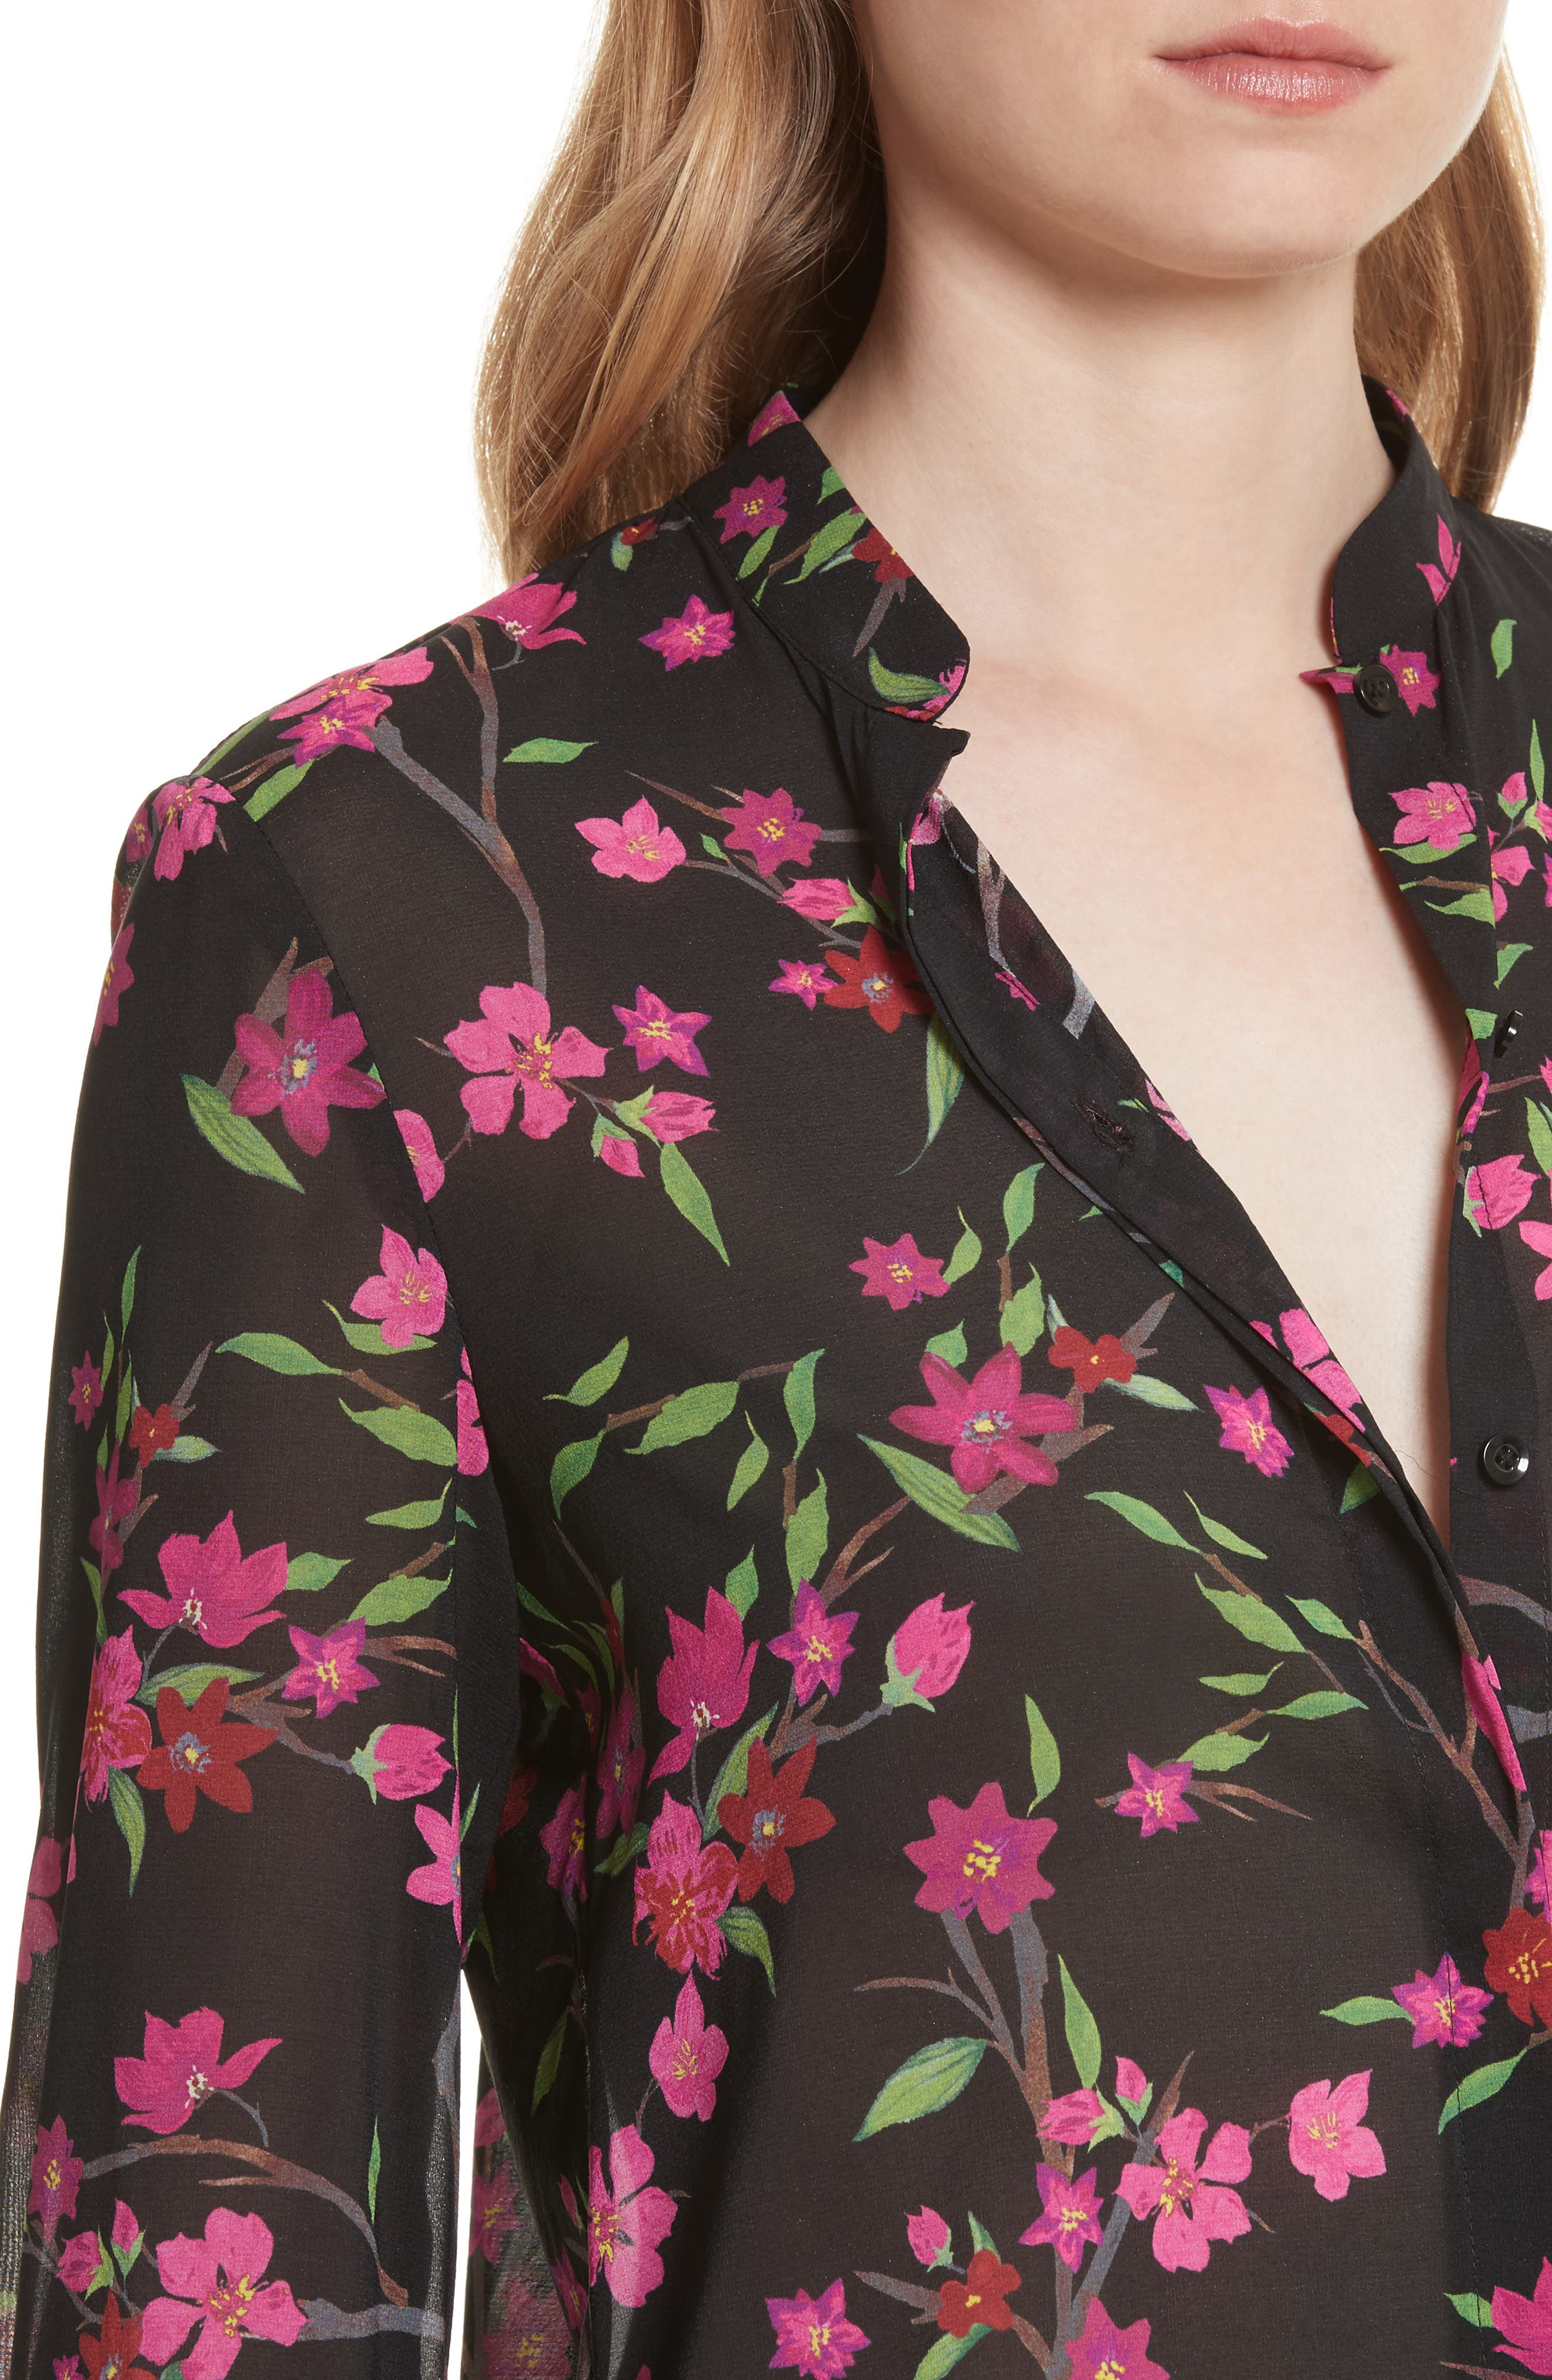 Eloise Mandarin Collar Blouse,                             Alternate thumbnail 5, color,                             Sakura Floral/ Black